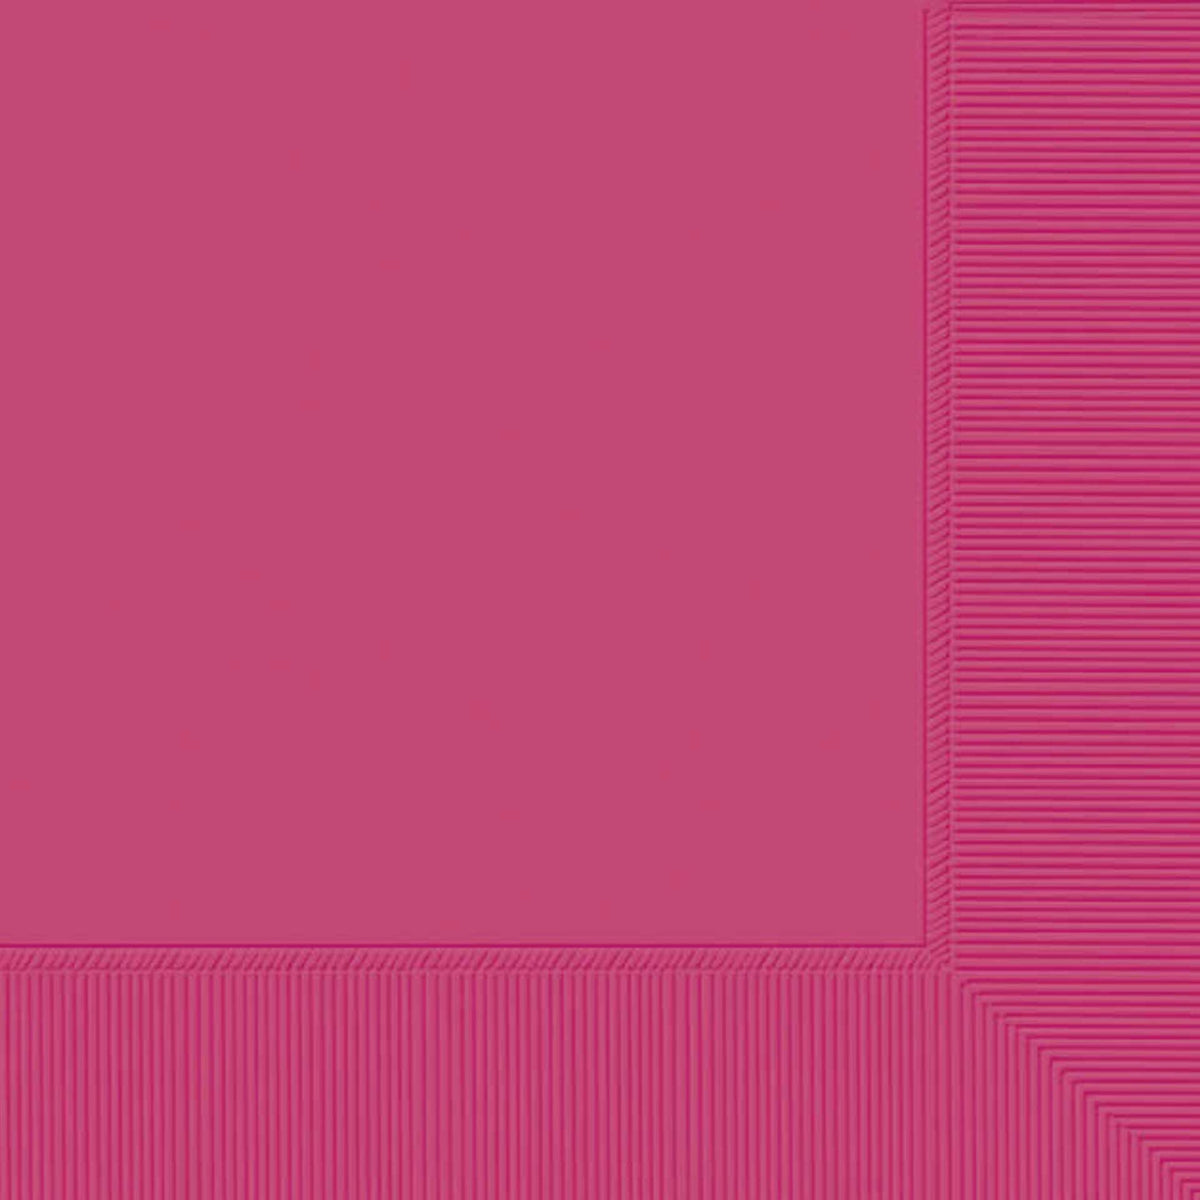 Hot Pink Luncheon Napkin Plain, Pkg/50